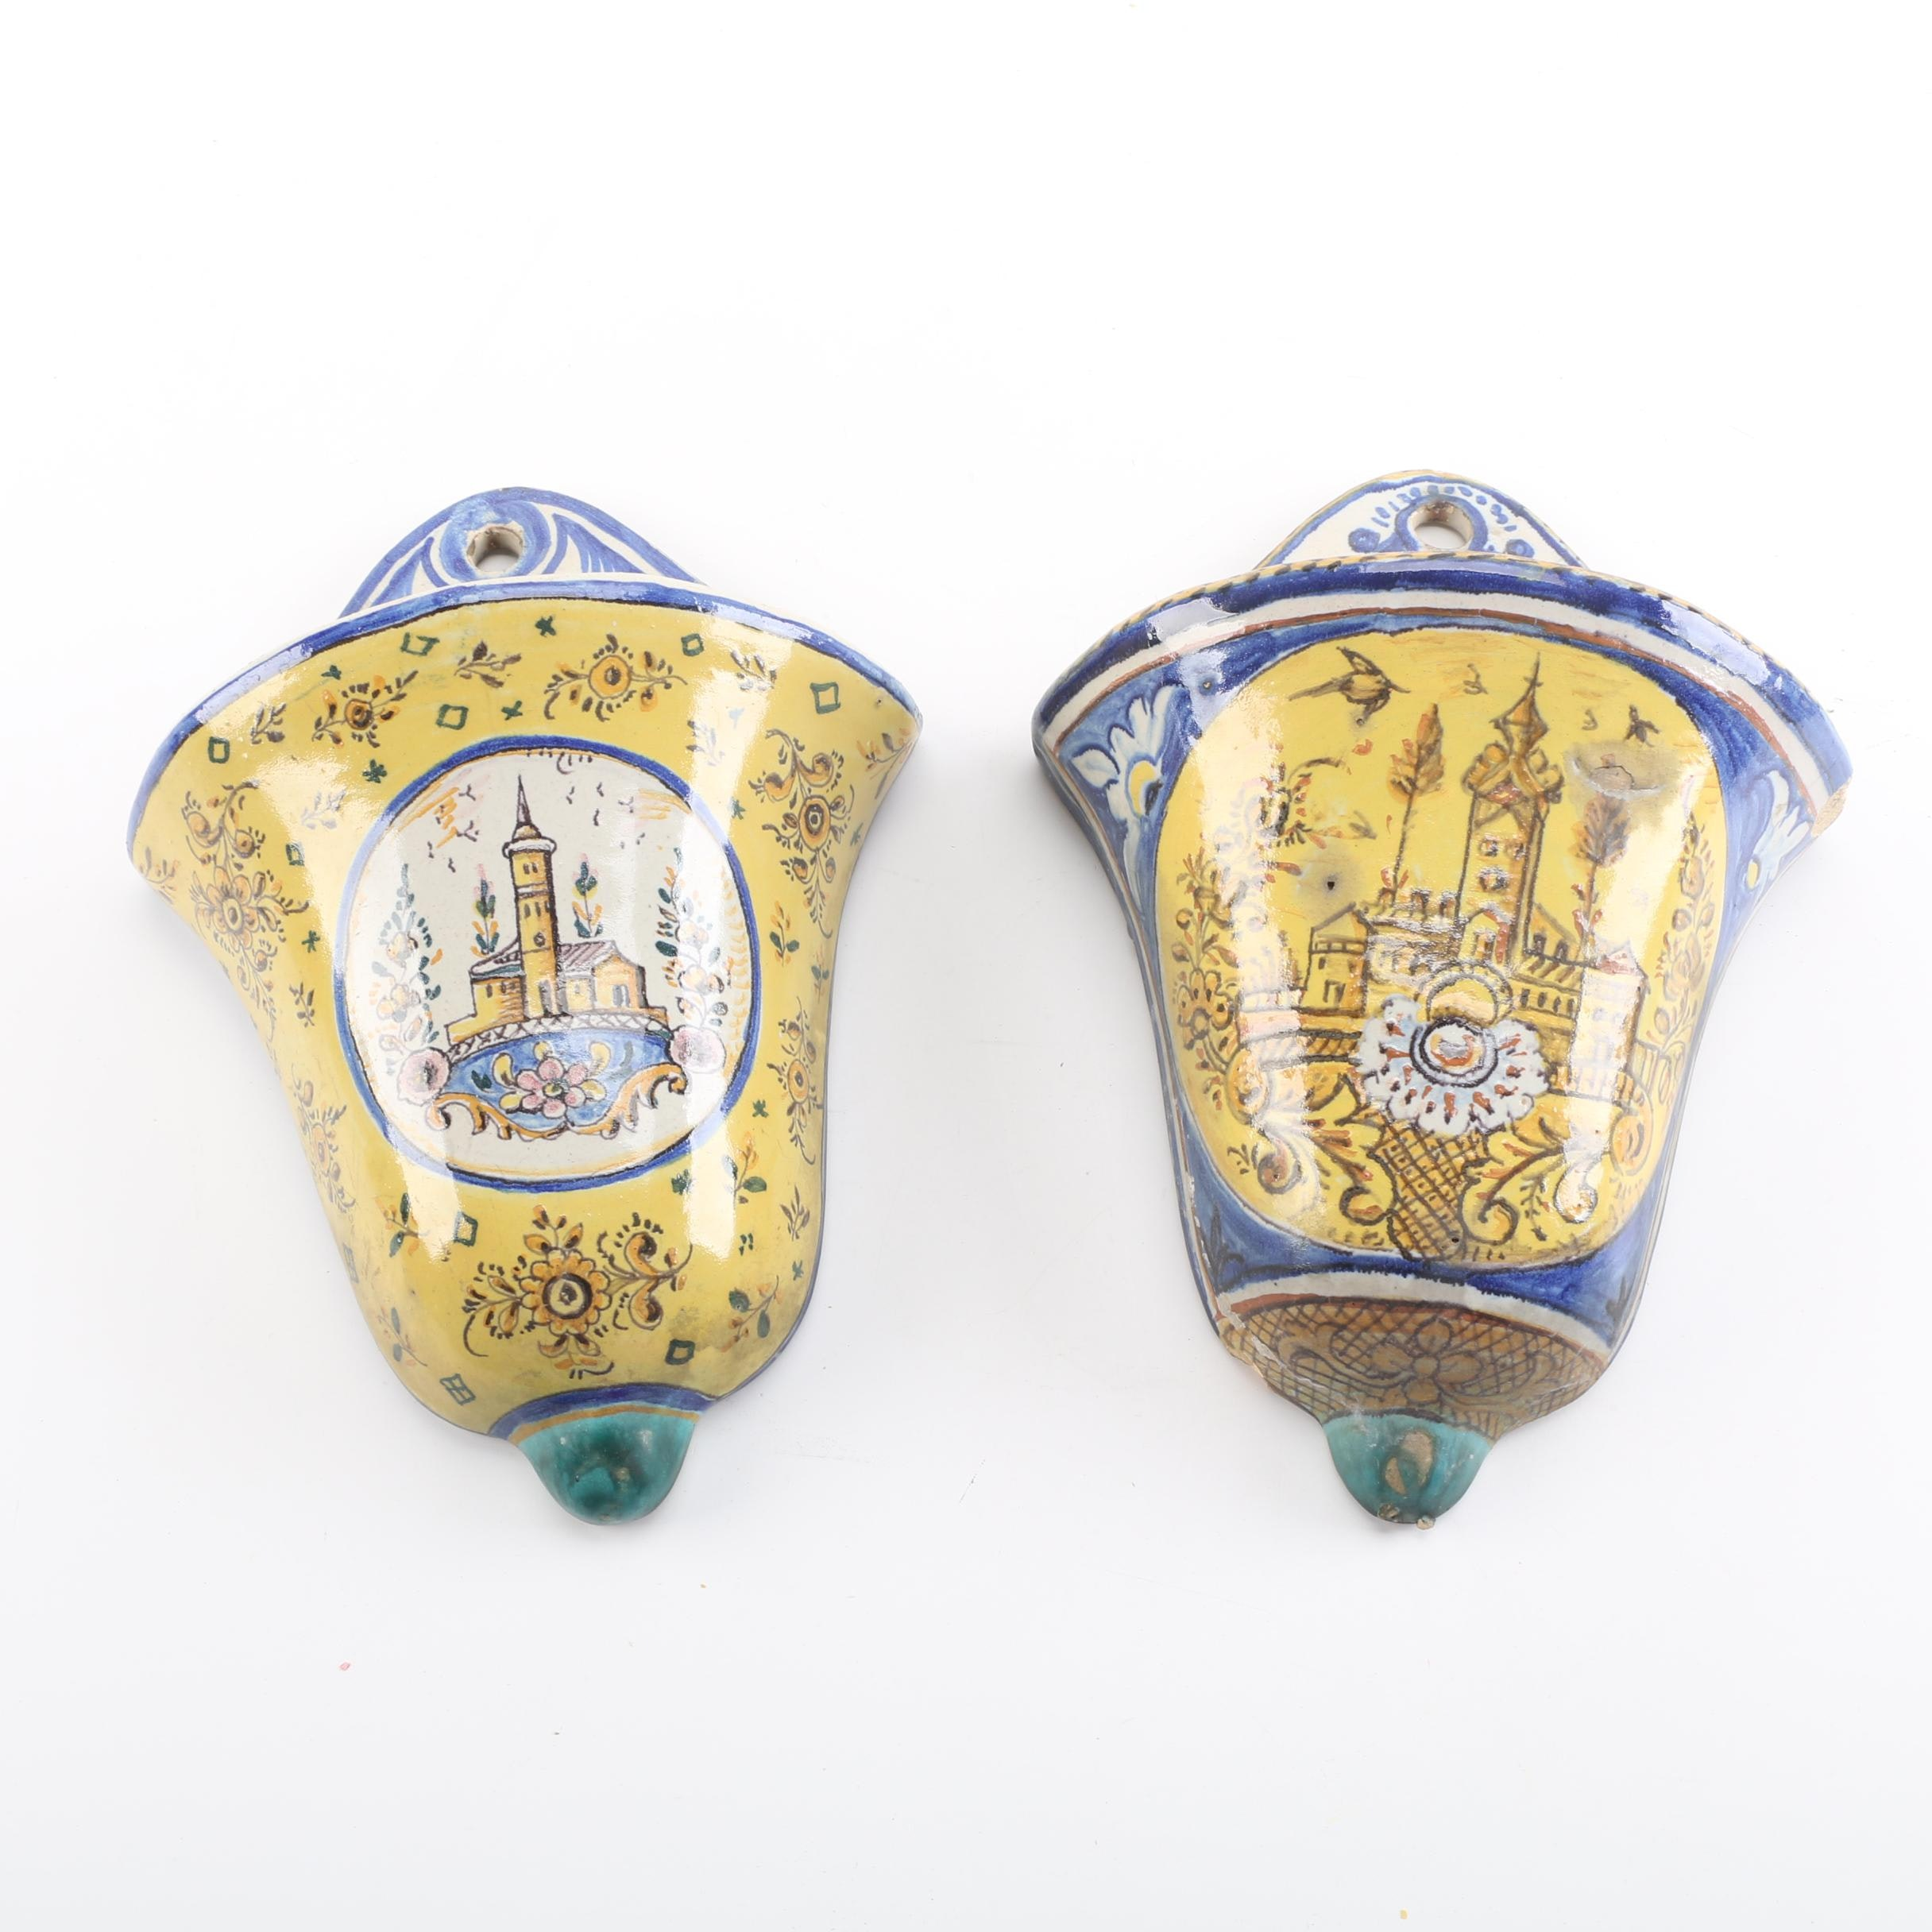 Pair of Faience Ceramic Wall Pockets